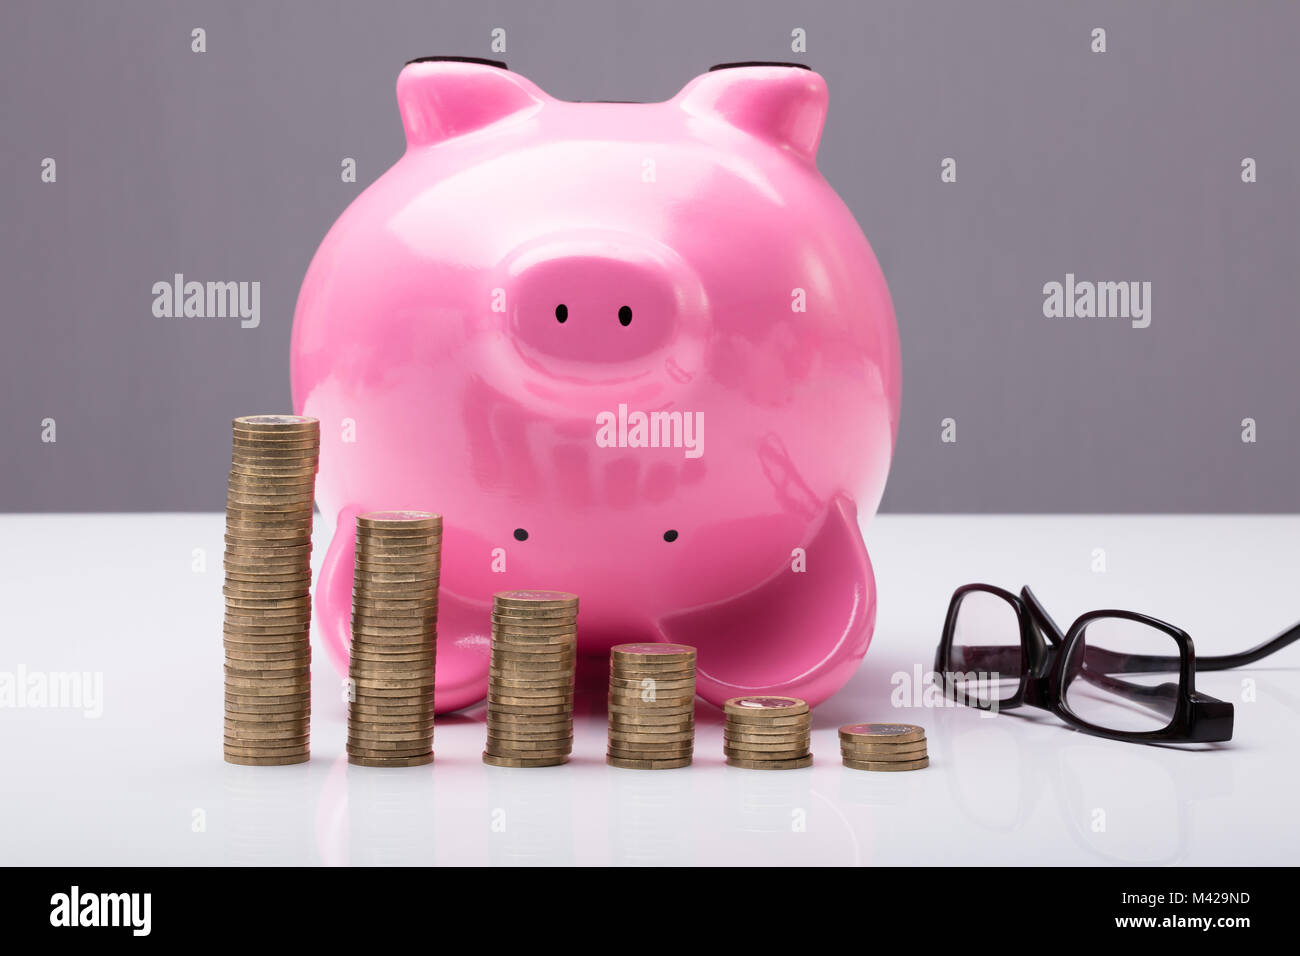 Upside Down Piggy Bank On Table With Eye Glasses And Stacked Coins On Table - Stock Image